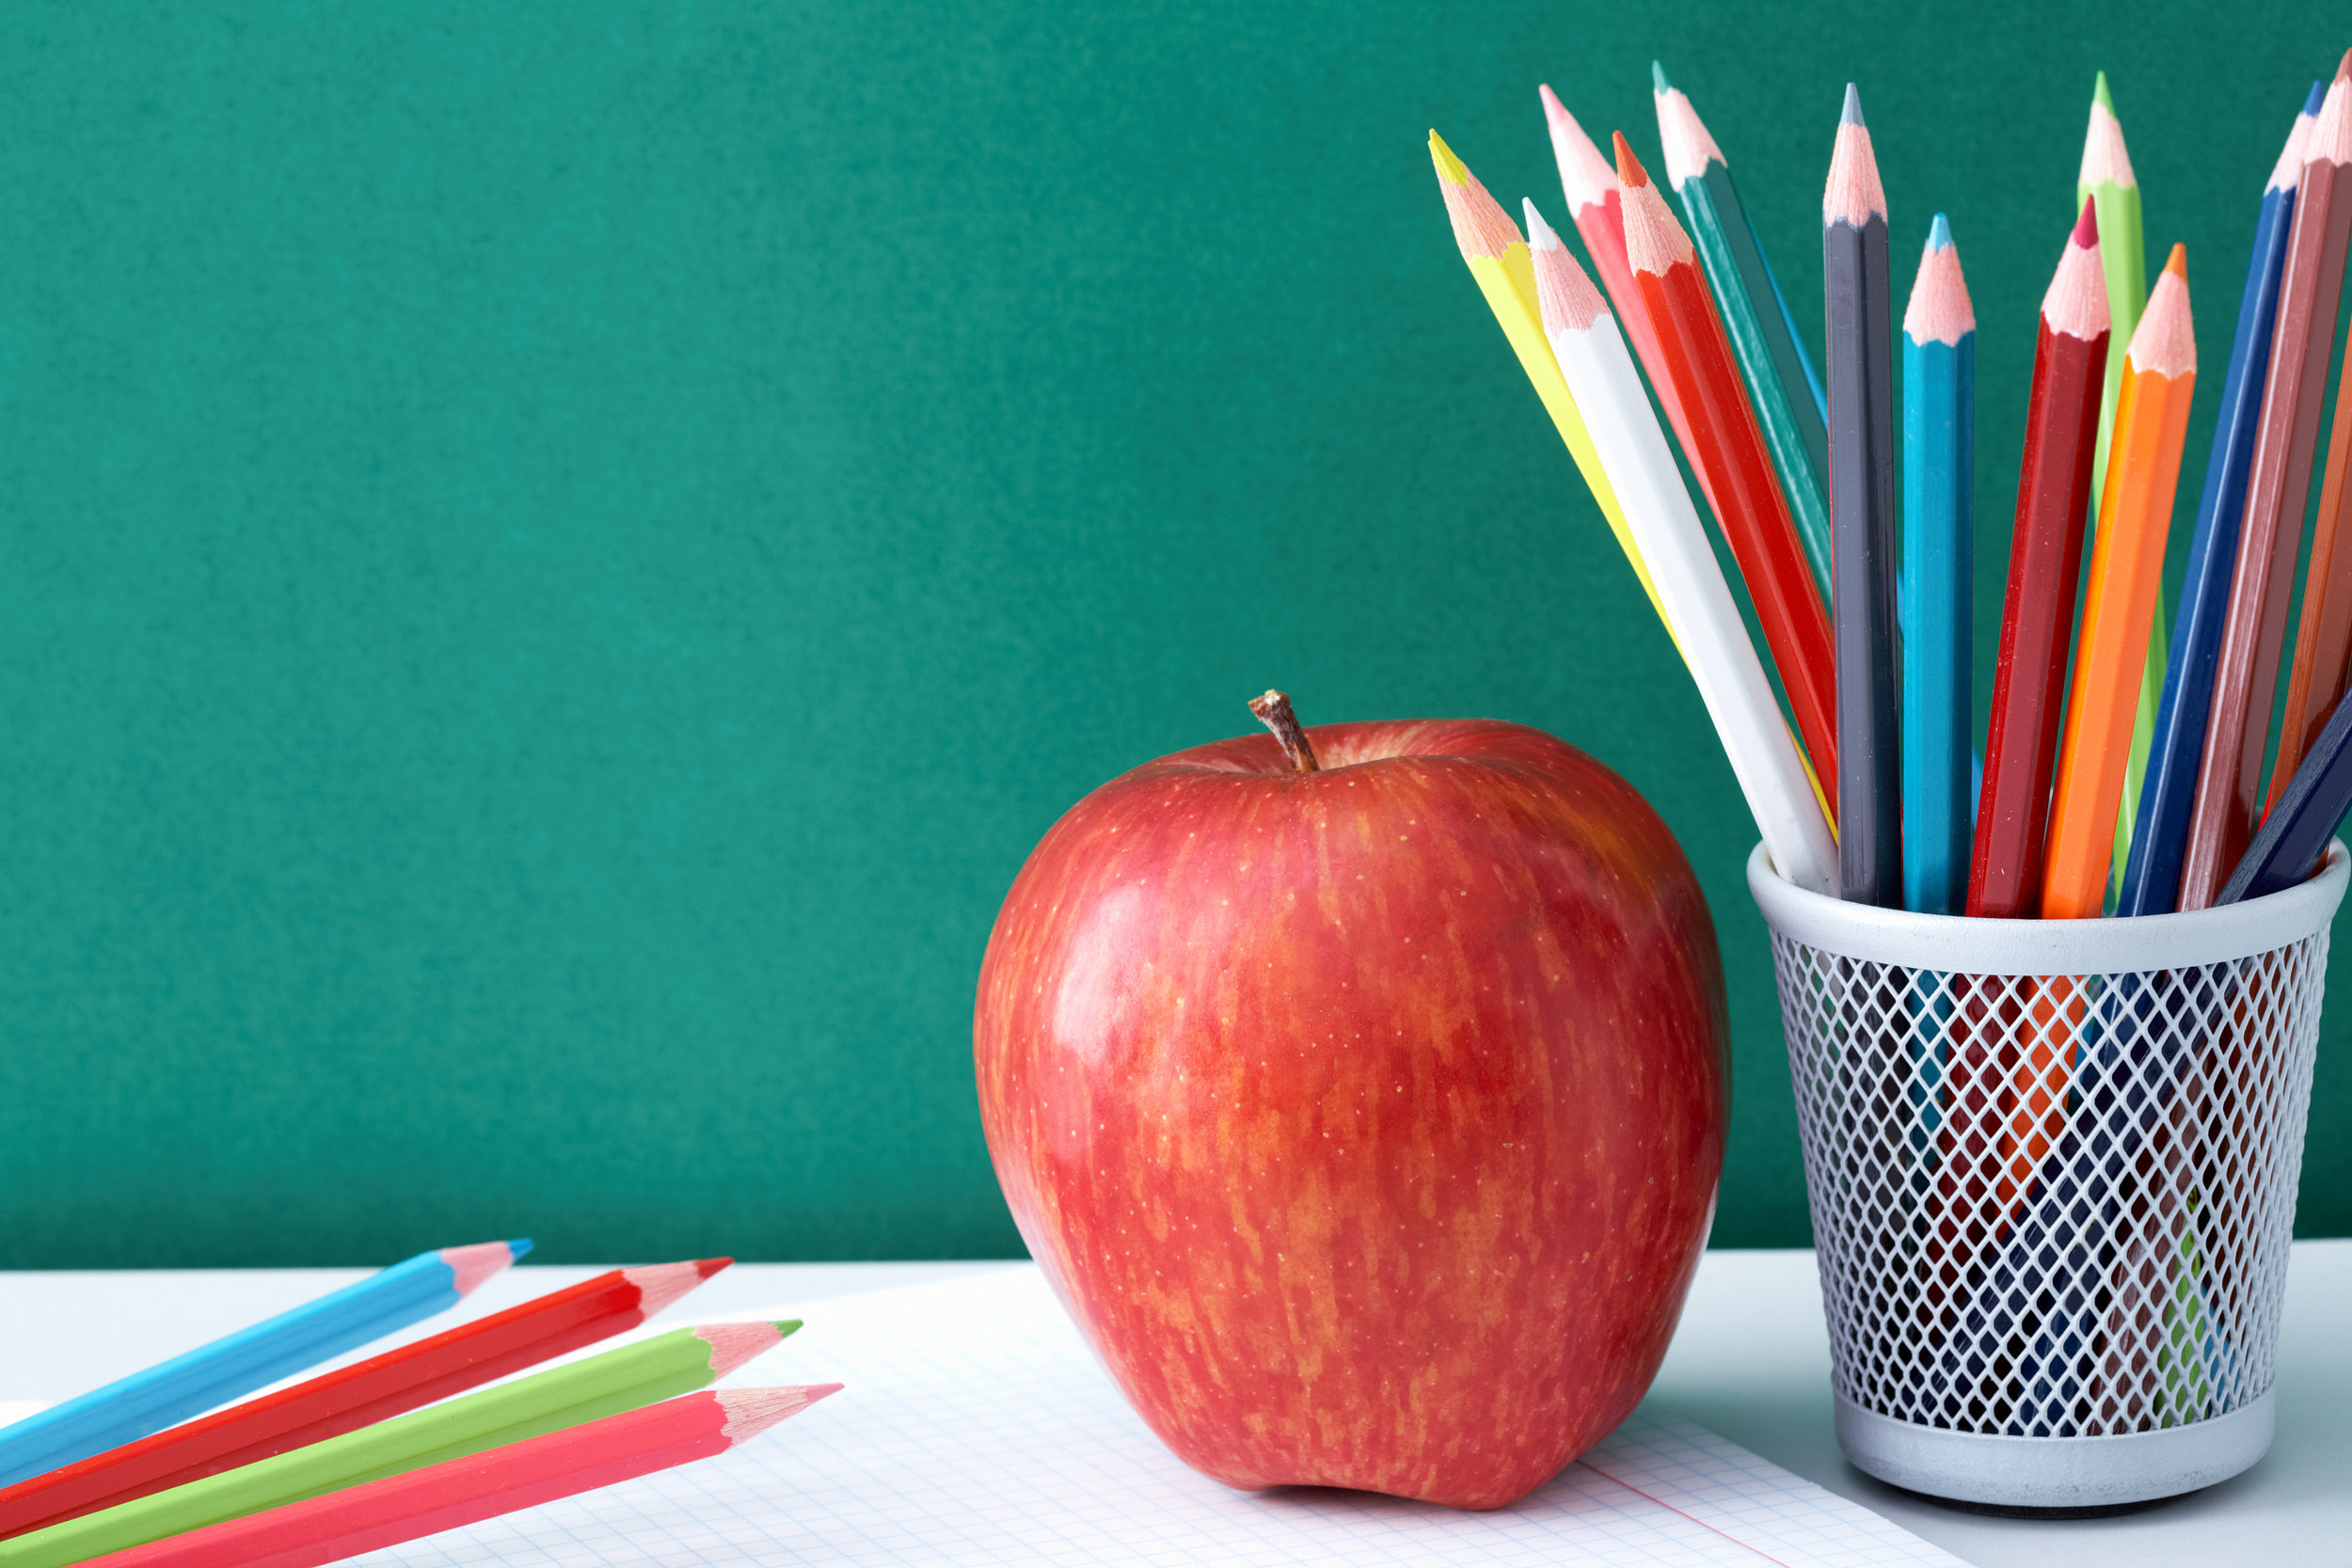 graphicstock-image-of-crayons-and-red-apple-against-blackboard_HaQHZBR14b.jpg